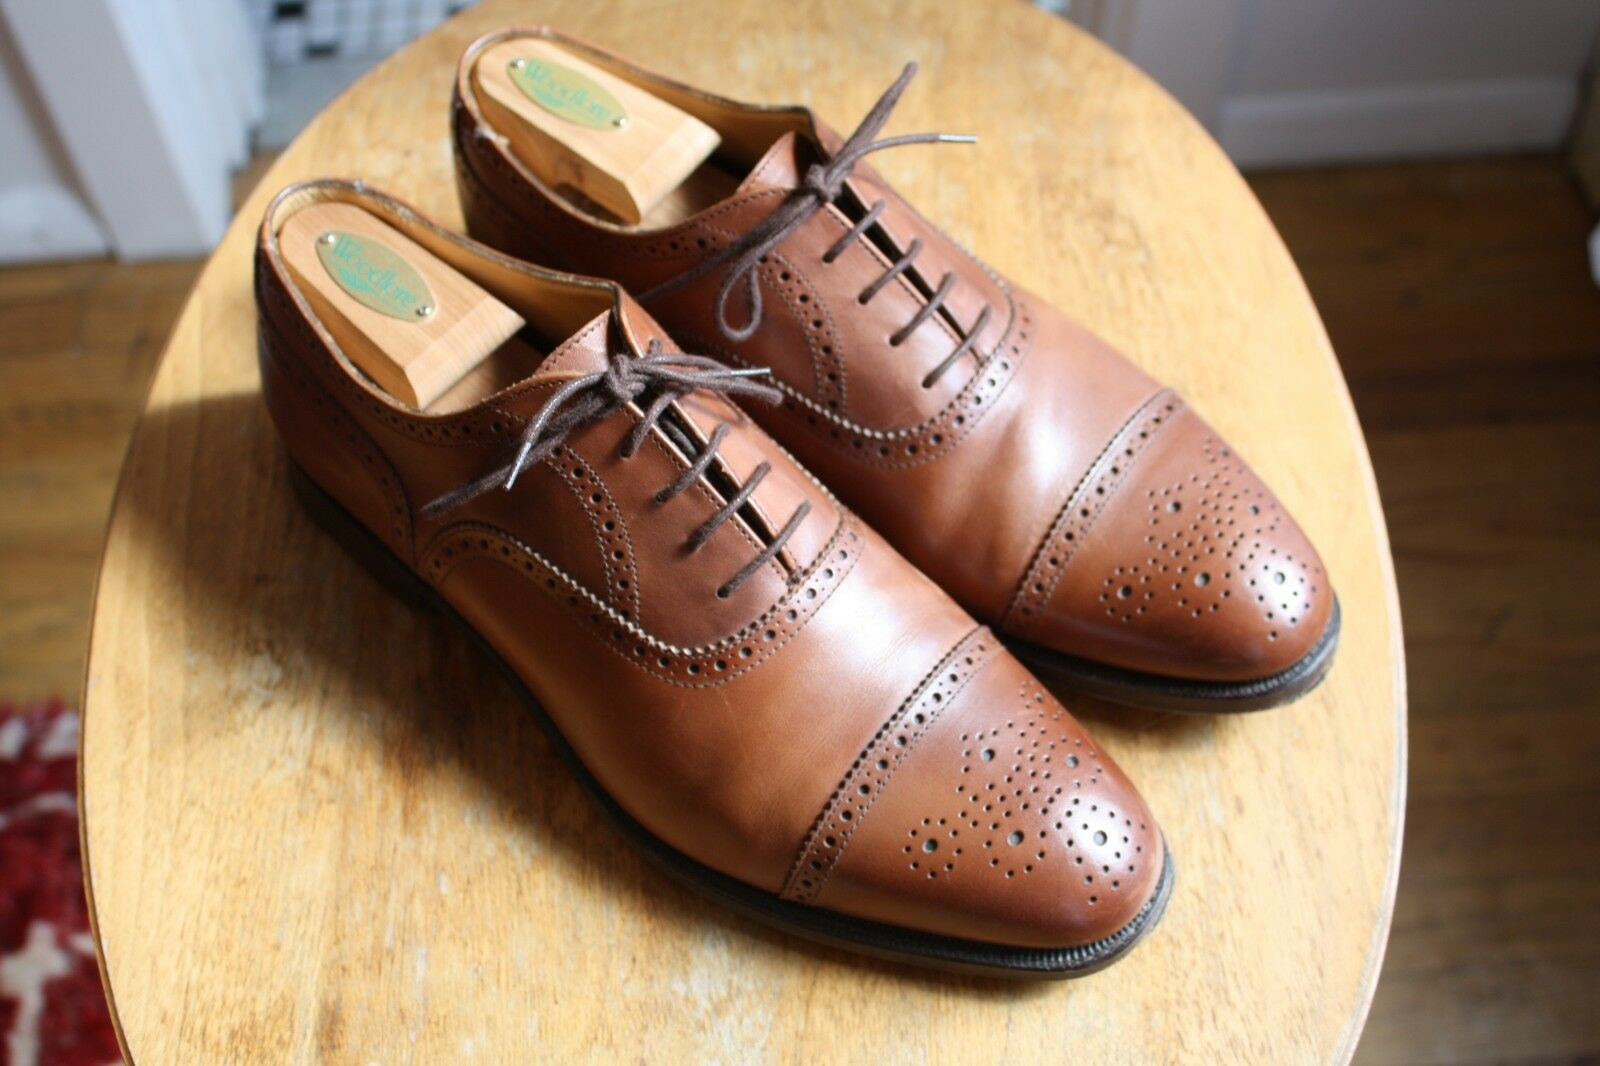 Brooks Bredhers x Alfred Ssilver Brown Captoe Brogues 10D